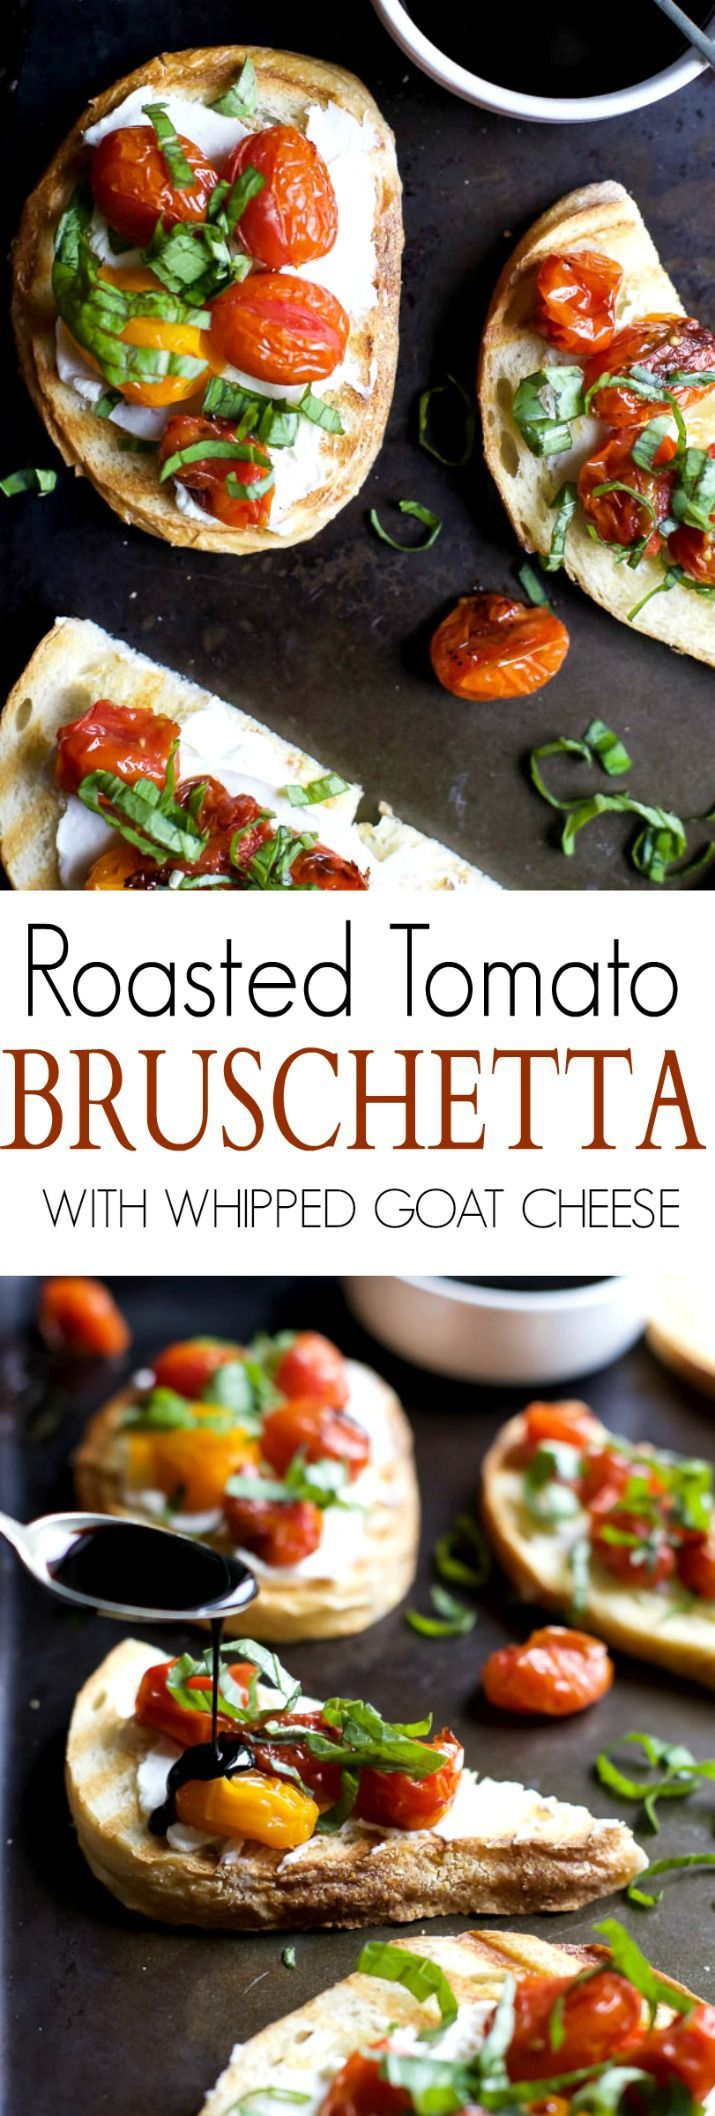 Caprese Bruschetta with Whipped Goat Cheese